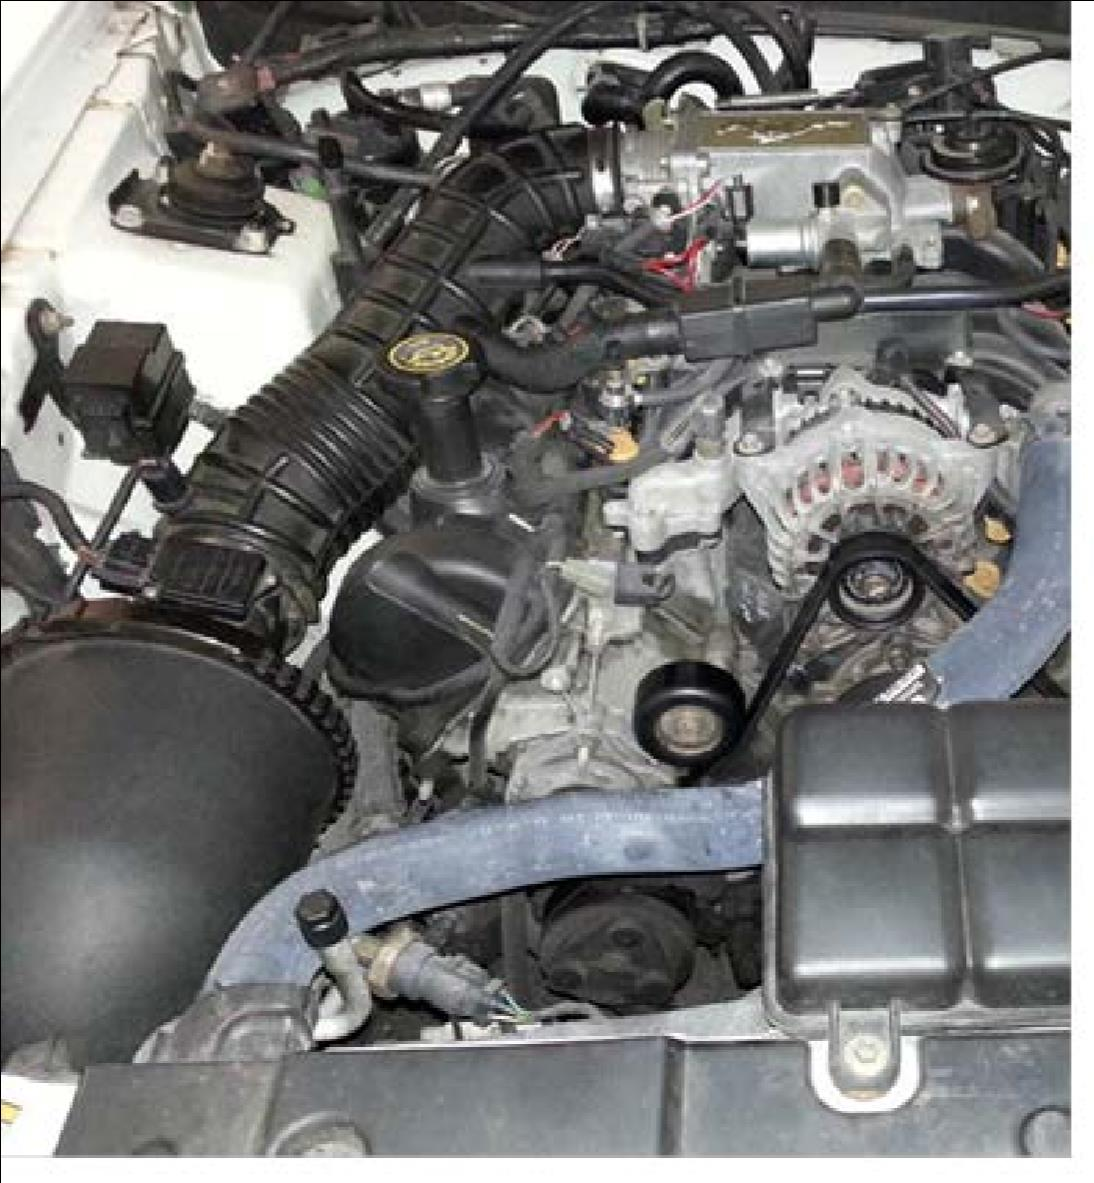 How To Install A Bbk Cold Air Intake On Your 1996 2004 Mustang Gt 1999 Ford 4 6 Engine Diagram Maf Save The Rubber Grommets That Were Pulled From Oem Filter Housing And Be Very Careful With Sensor Unit